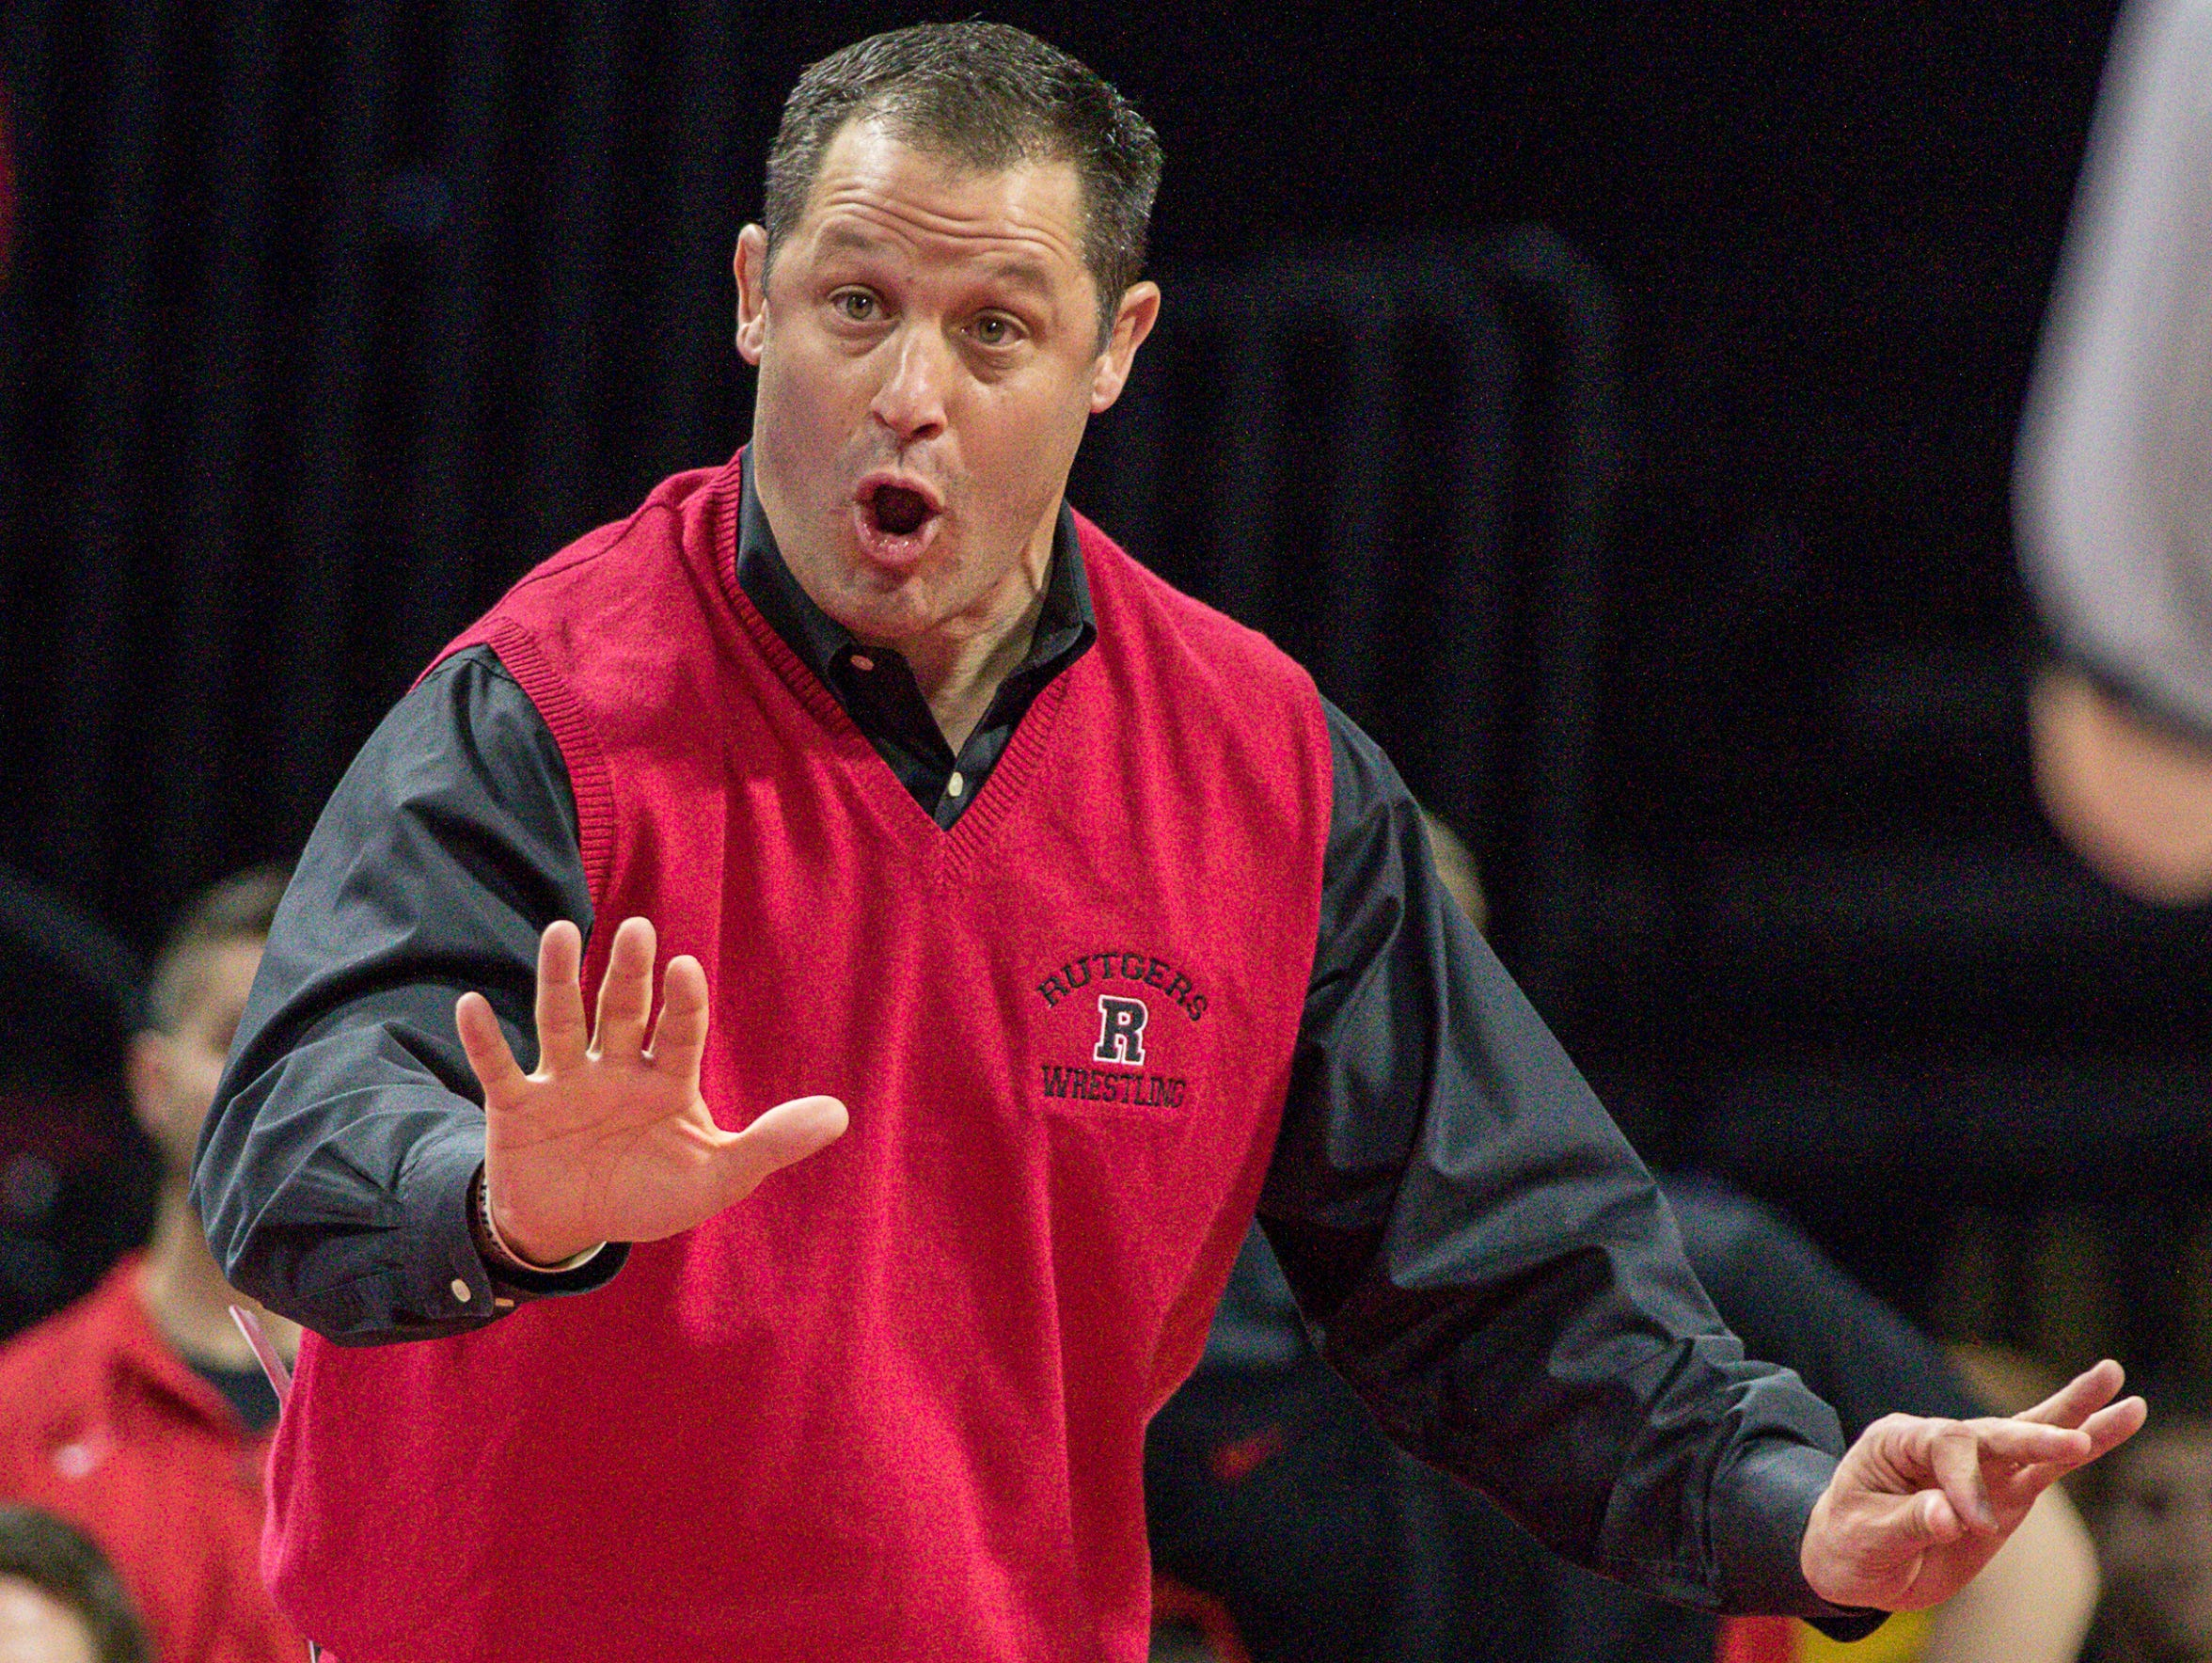 Rutgers wrestling coach Scott Goodale  is in his ninth